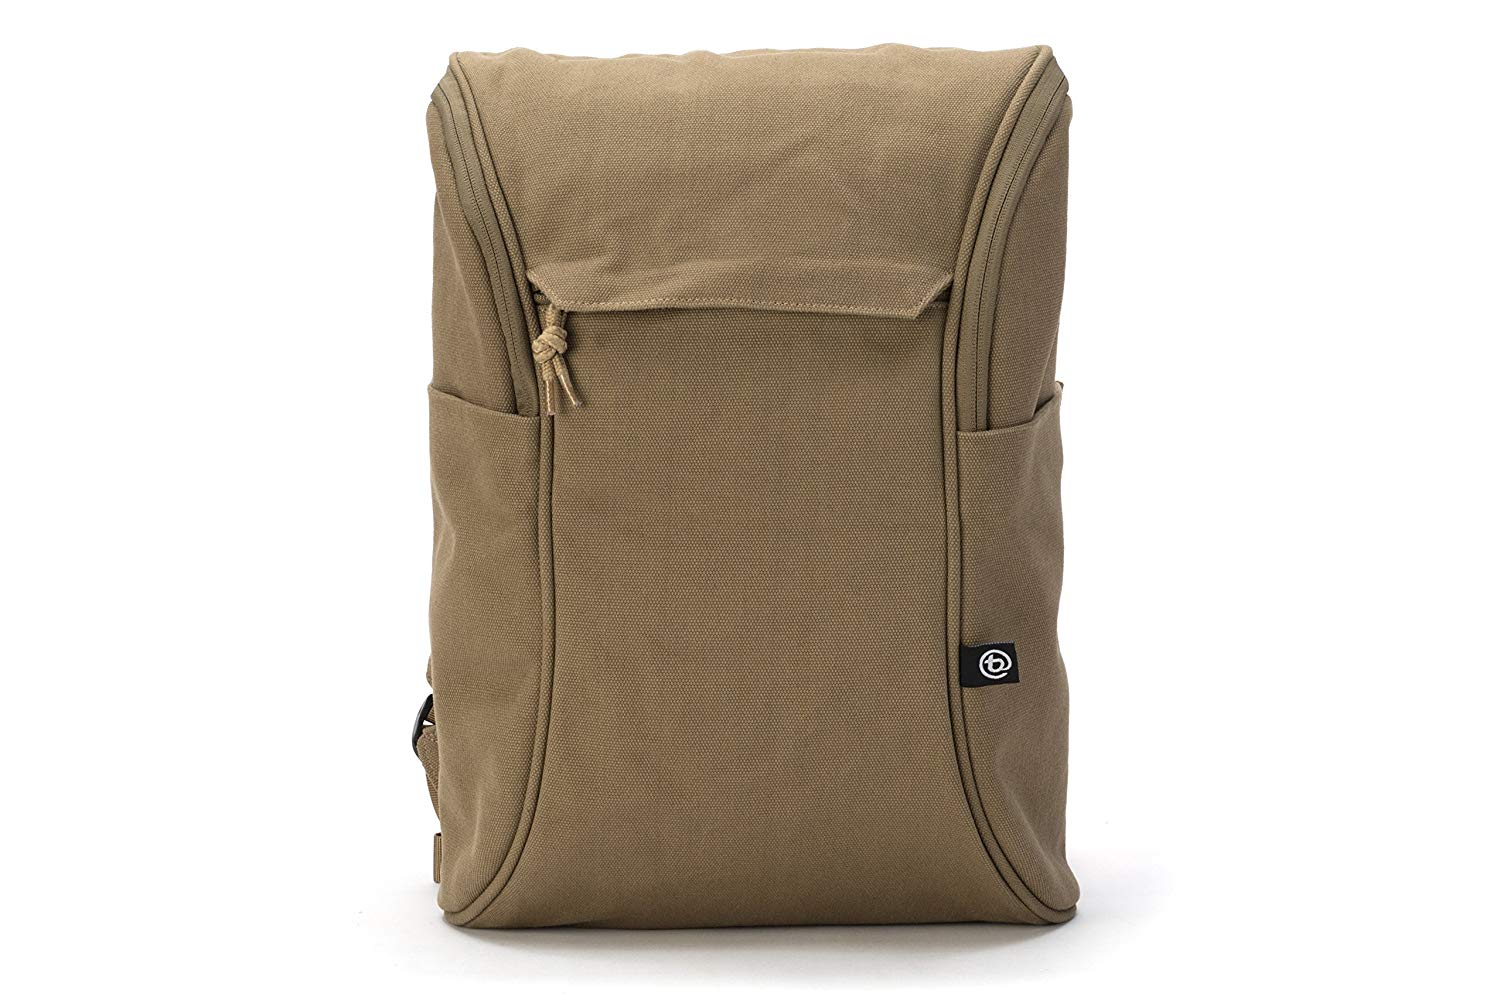 Booq Daypack Laptop Backpack